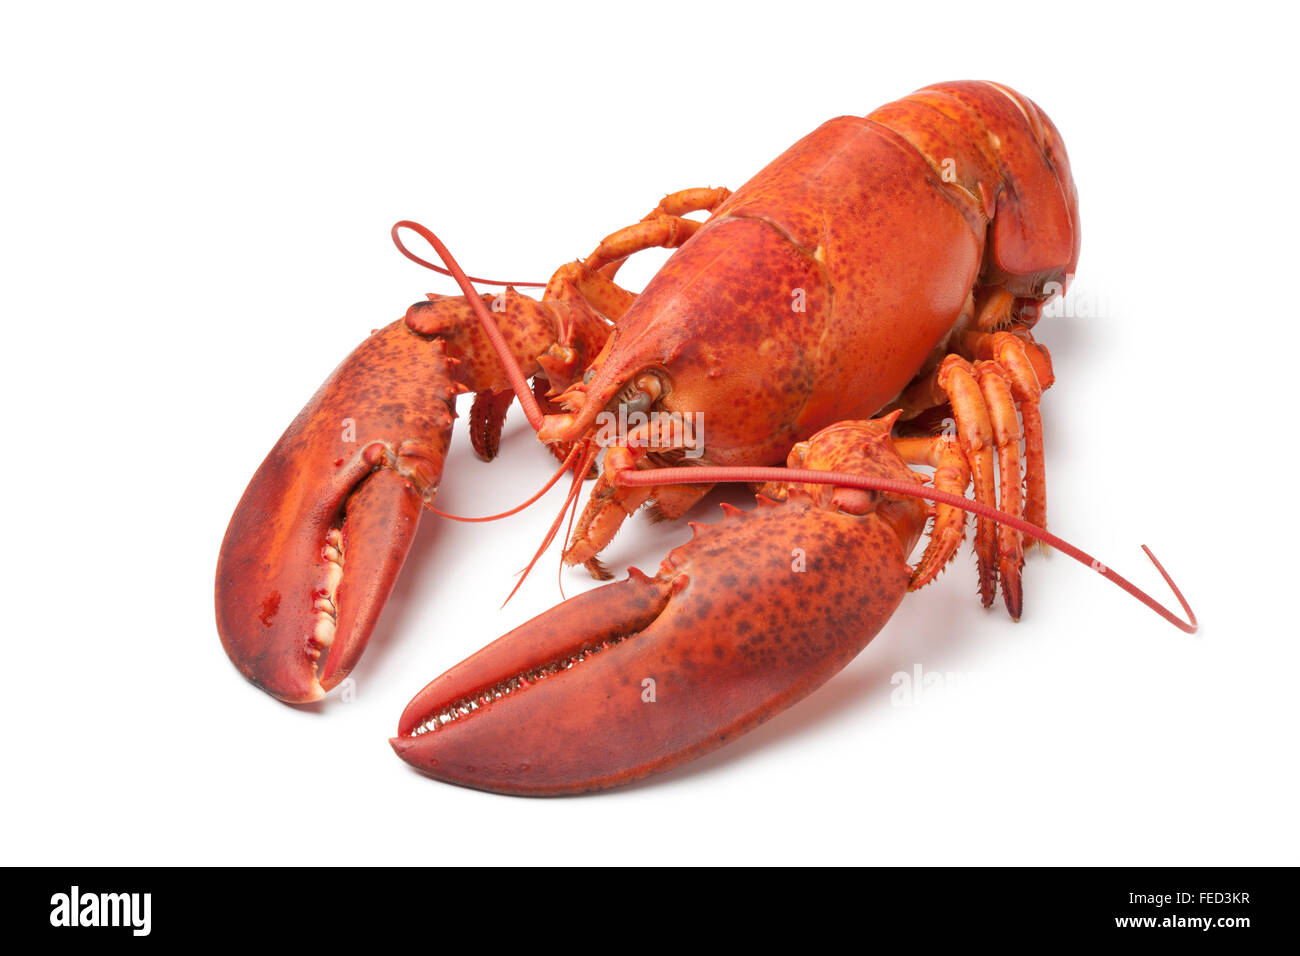 Single fresh cooked lobster on white background - Stock Image